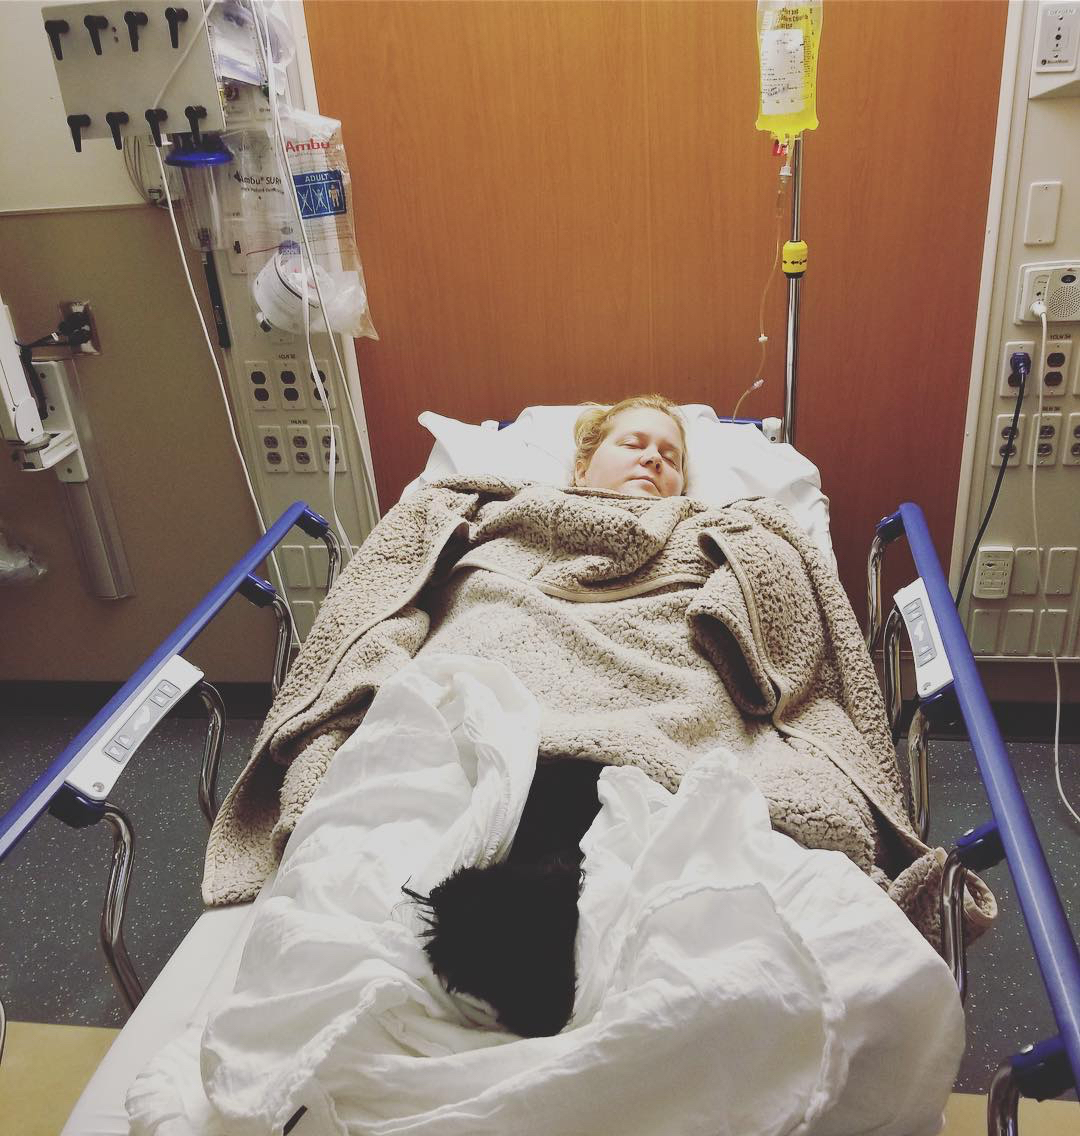 Amy Schumer Was Hospitalized With Hyperemesis Gravidarum. Here's What This Severe Morning Sickness Is Like